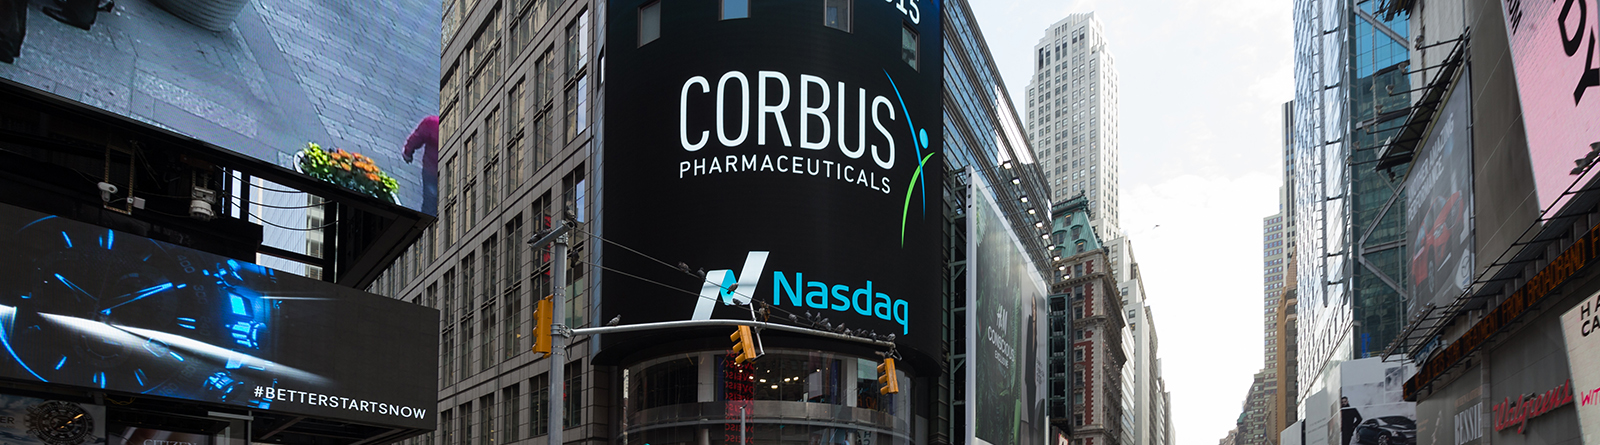 Corbus Pharmaceuticals Provides Management Team Updates Banner